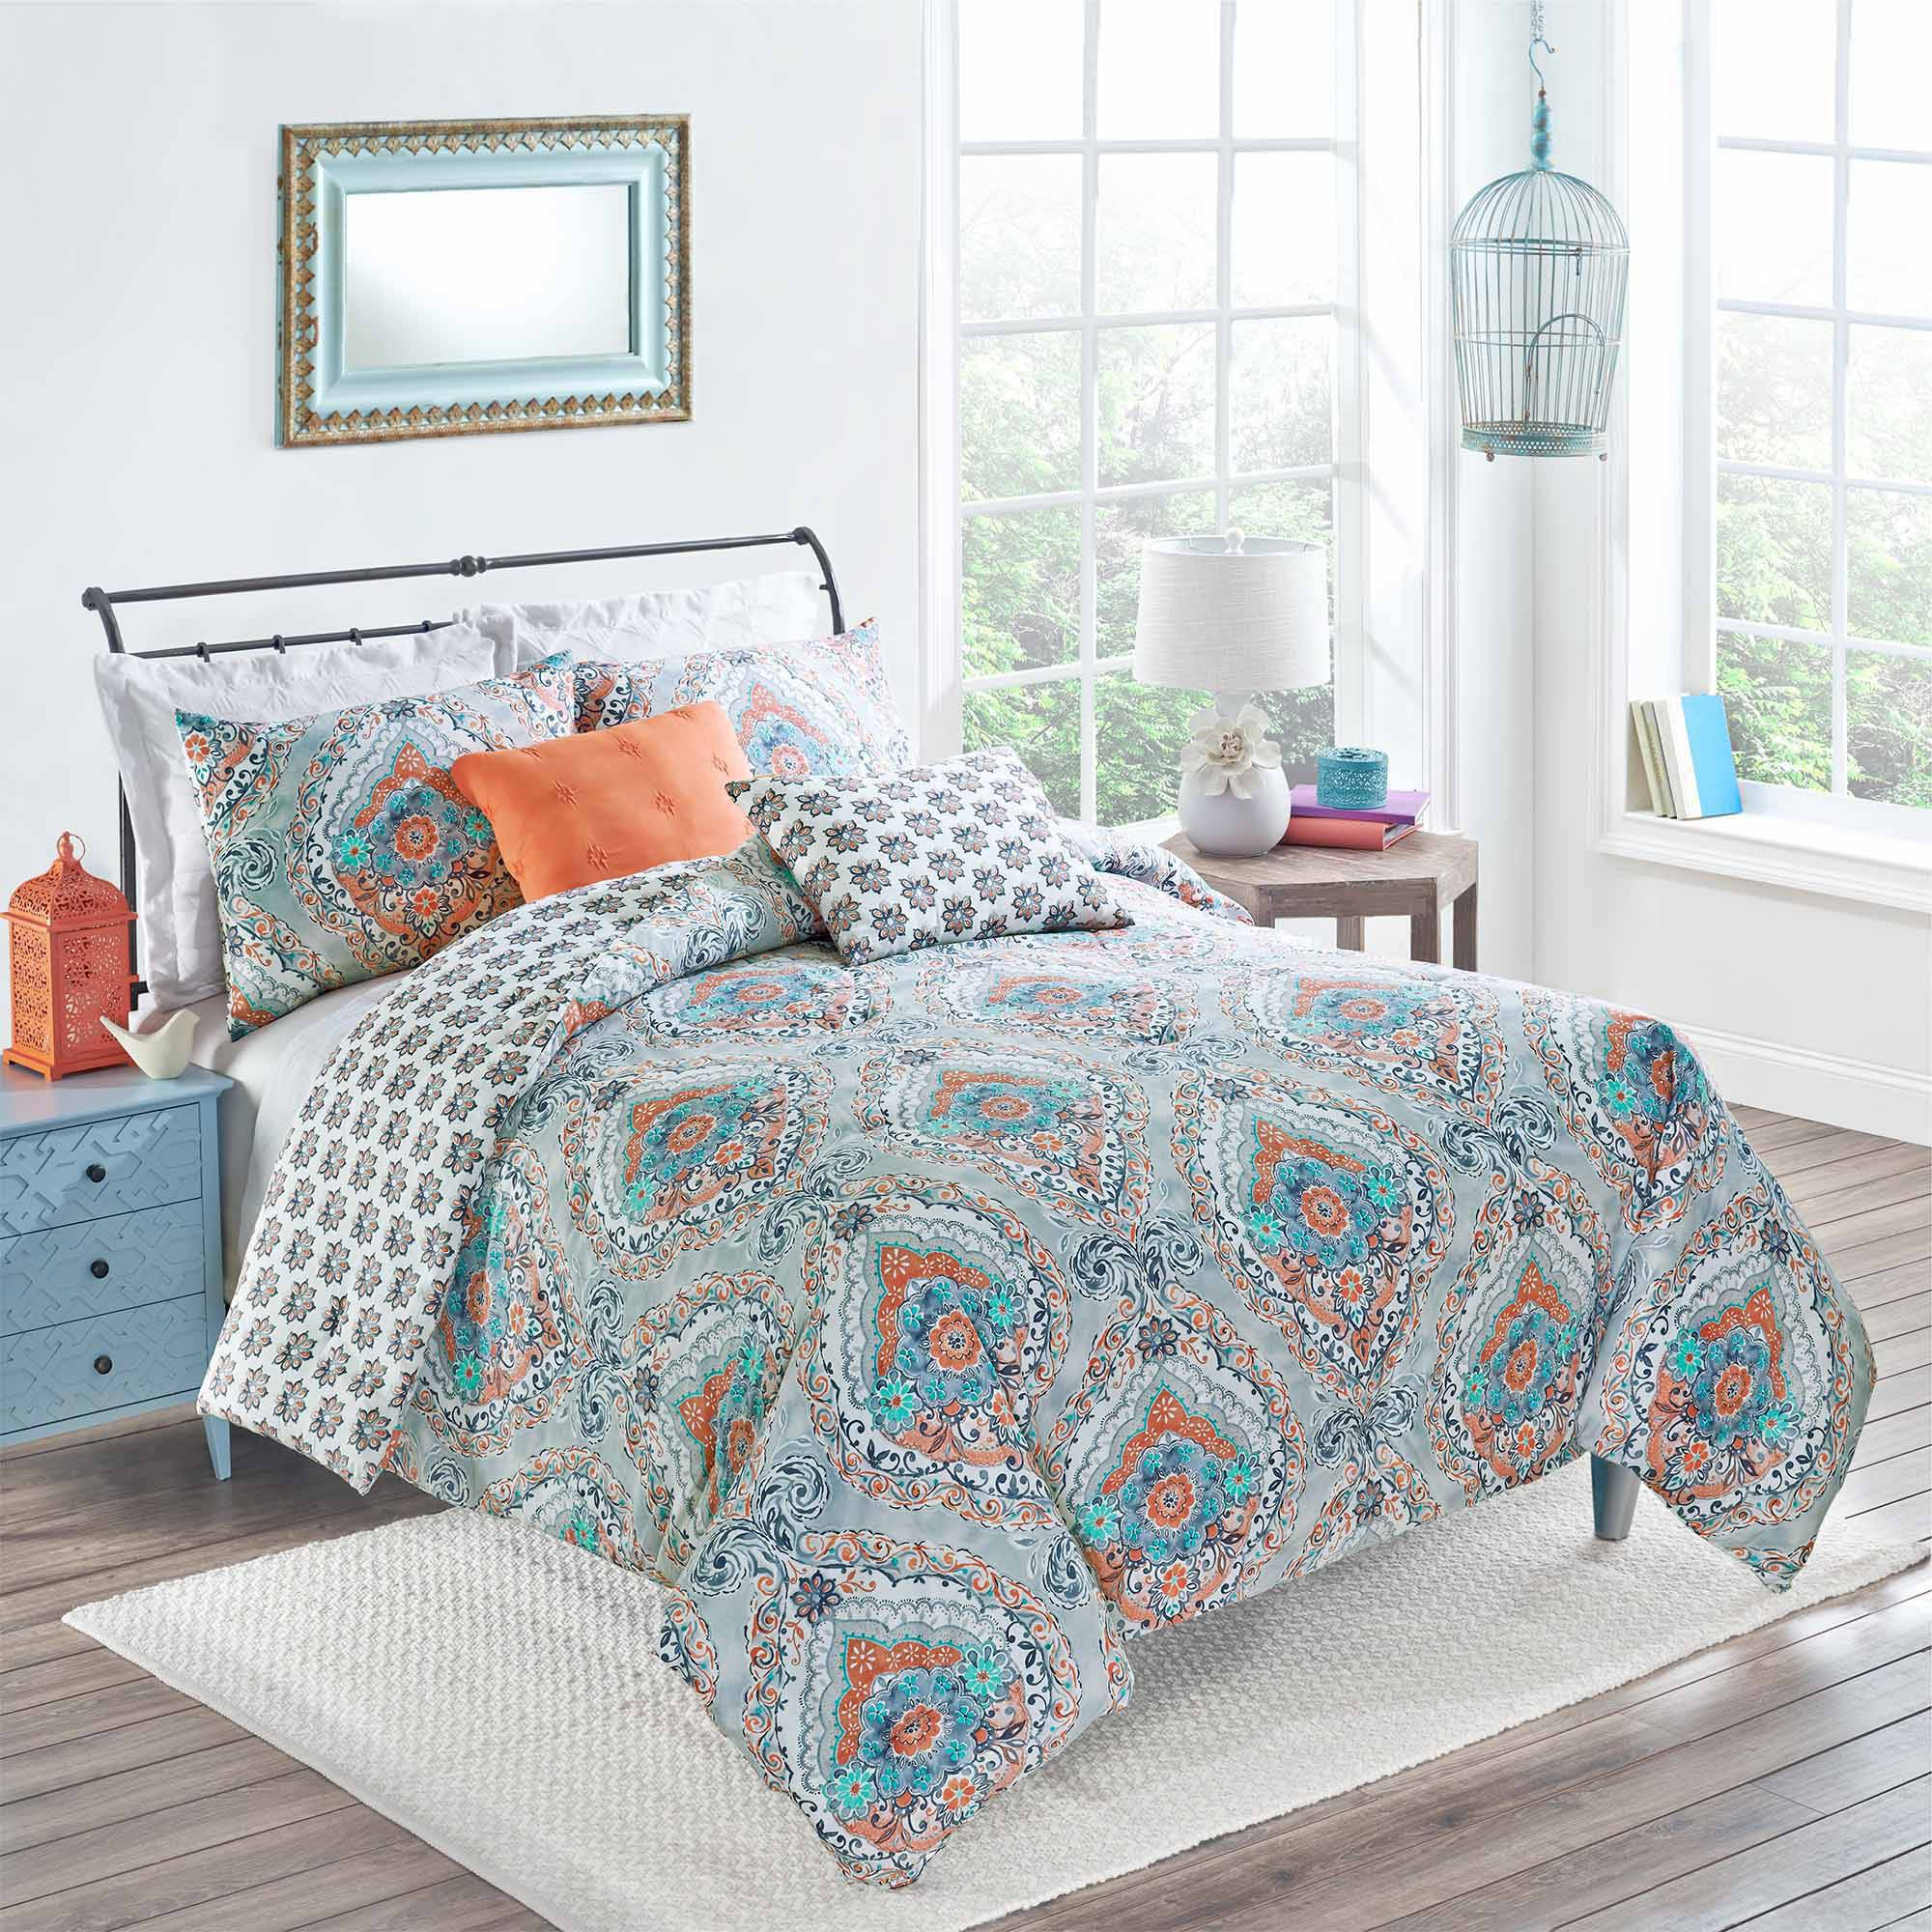 Vue Savannah Bedding Comforter Set